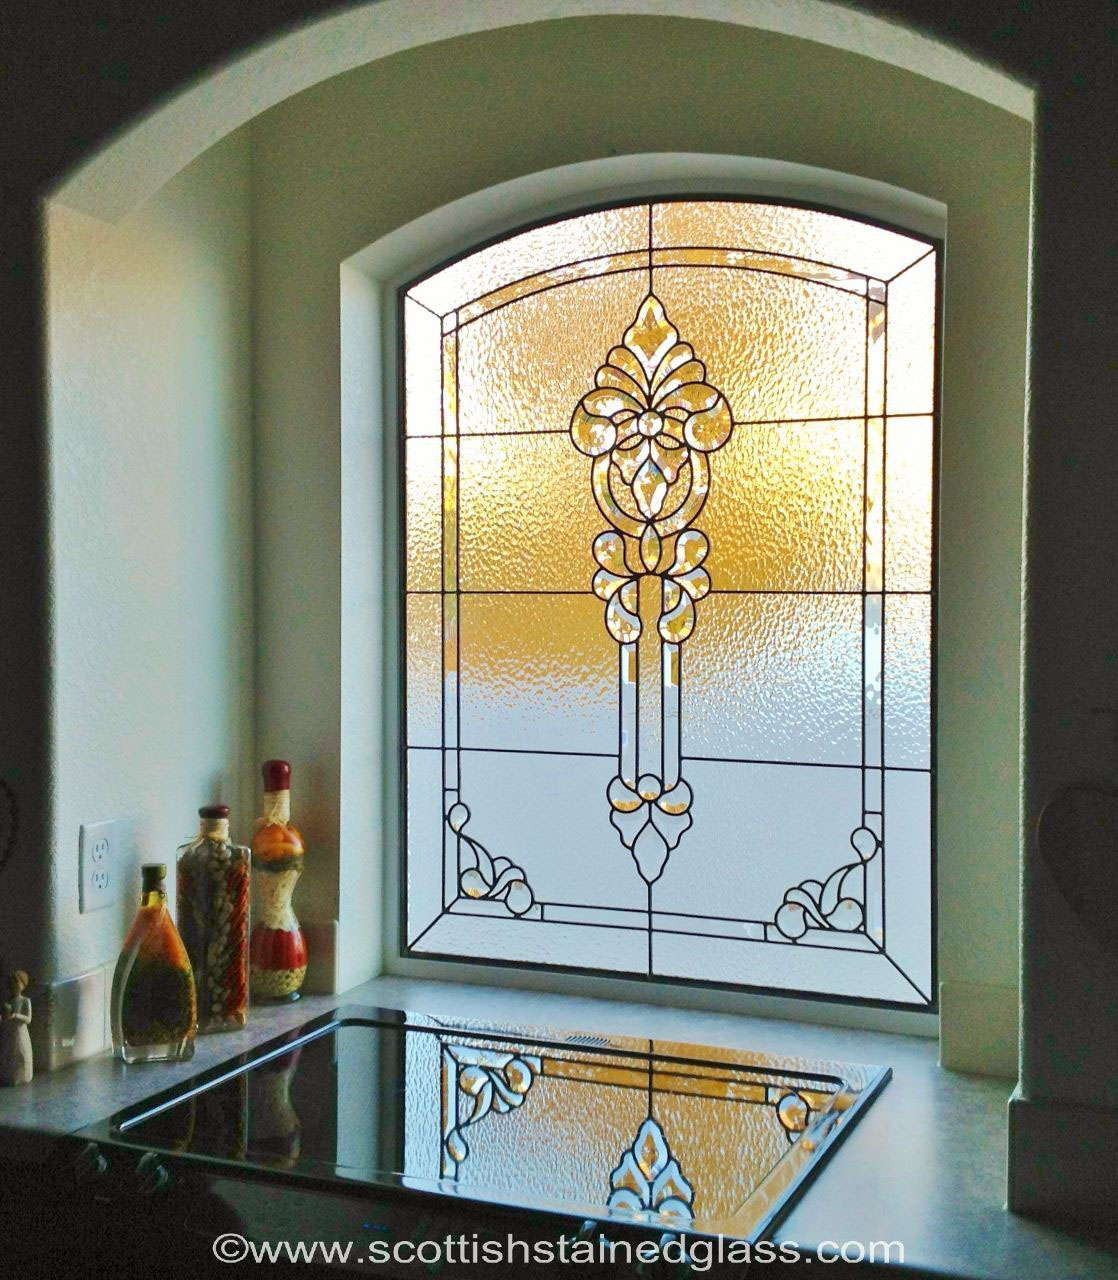 Stained glass kitchen windows cabinets dallas stained glass dallas Kitchen profile glass design